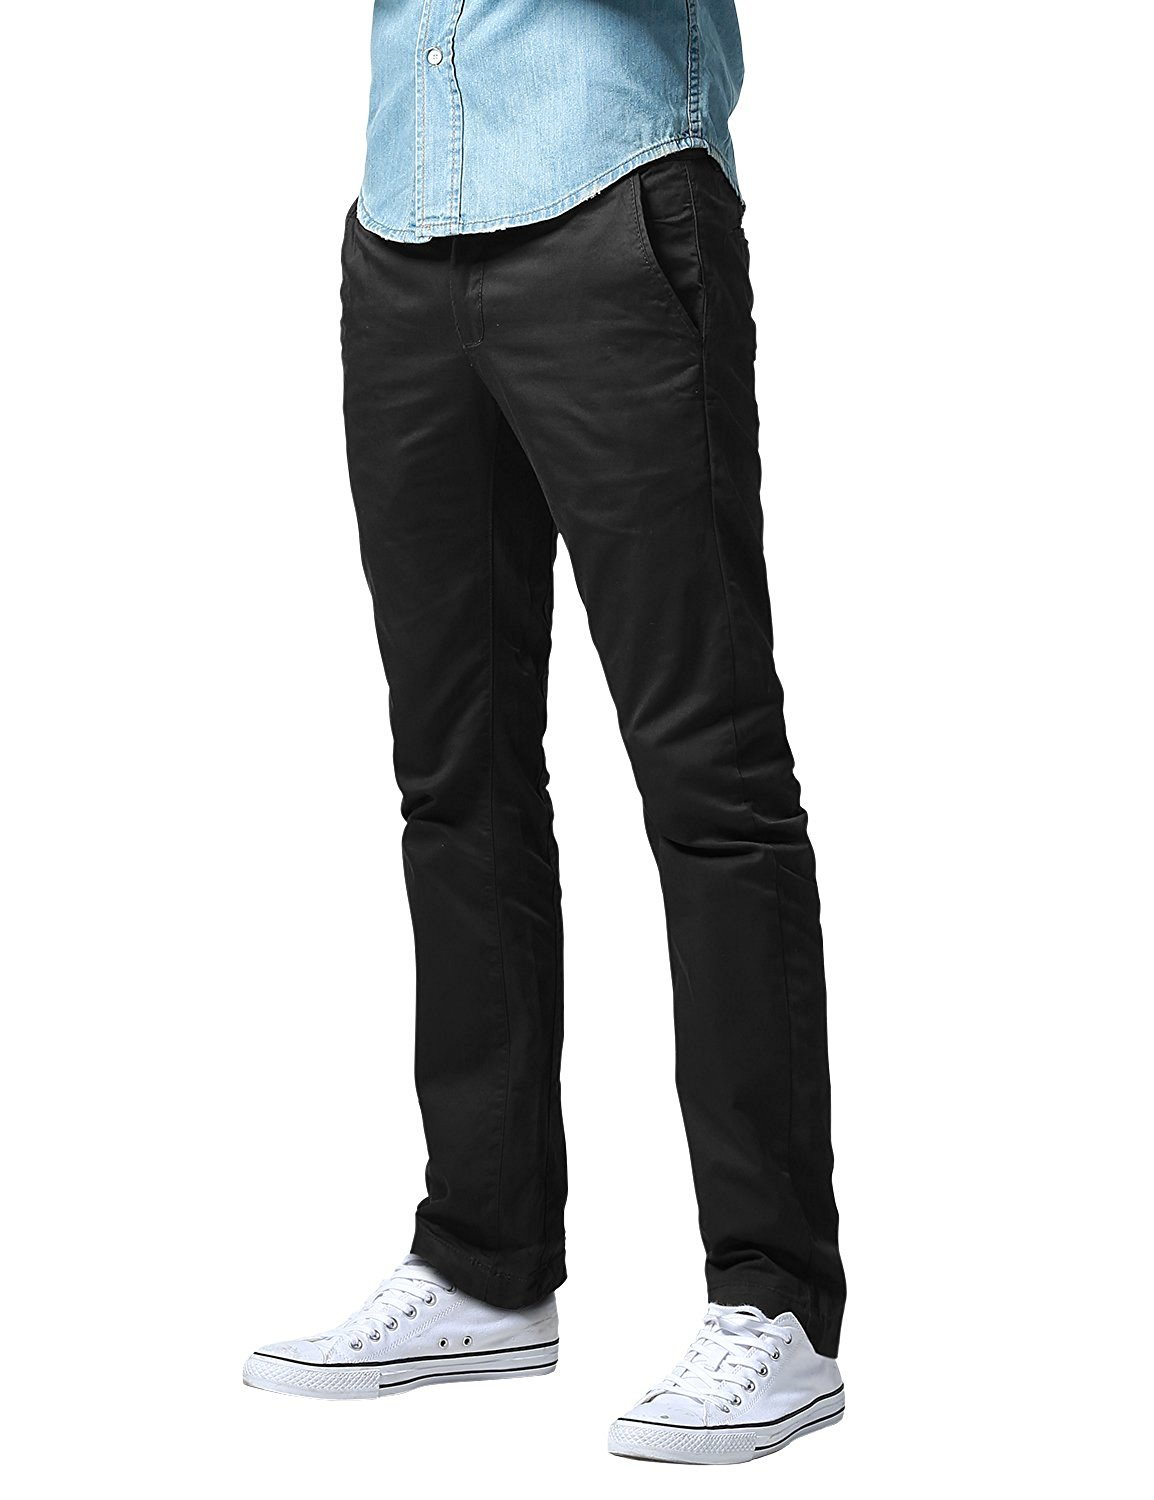 Match Men's Athletic Fit Straight Leg Casual Pants